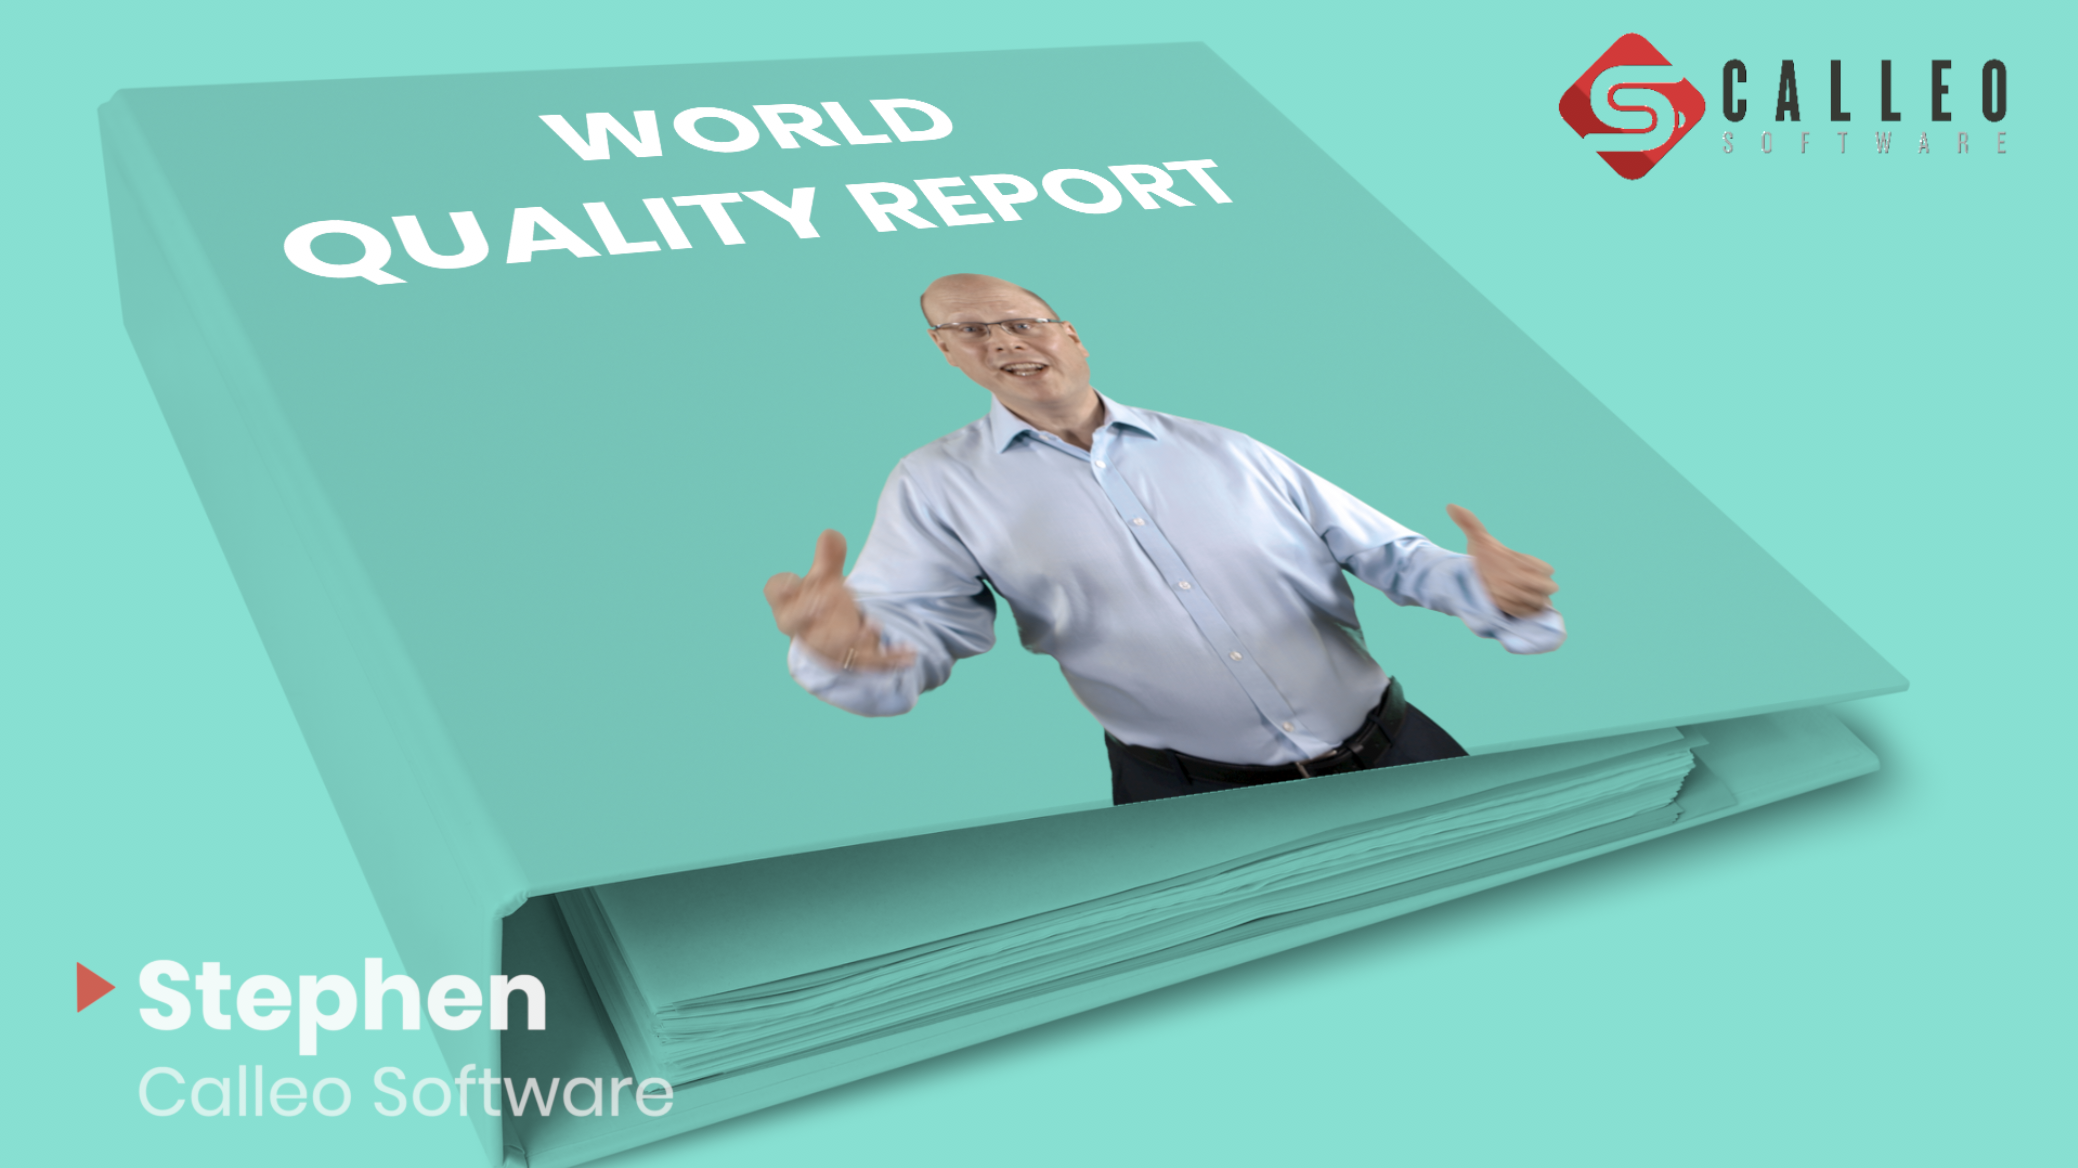 What can we learn from the World Quality Report